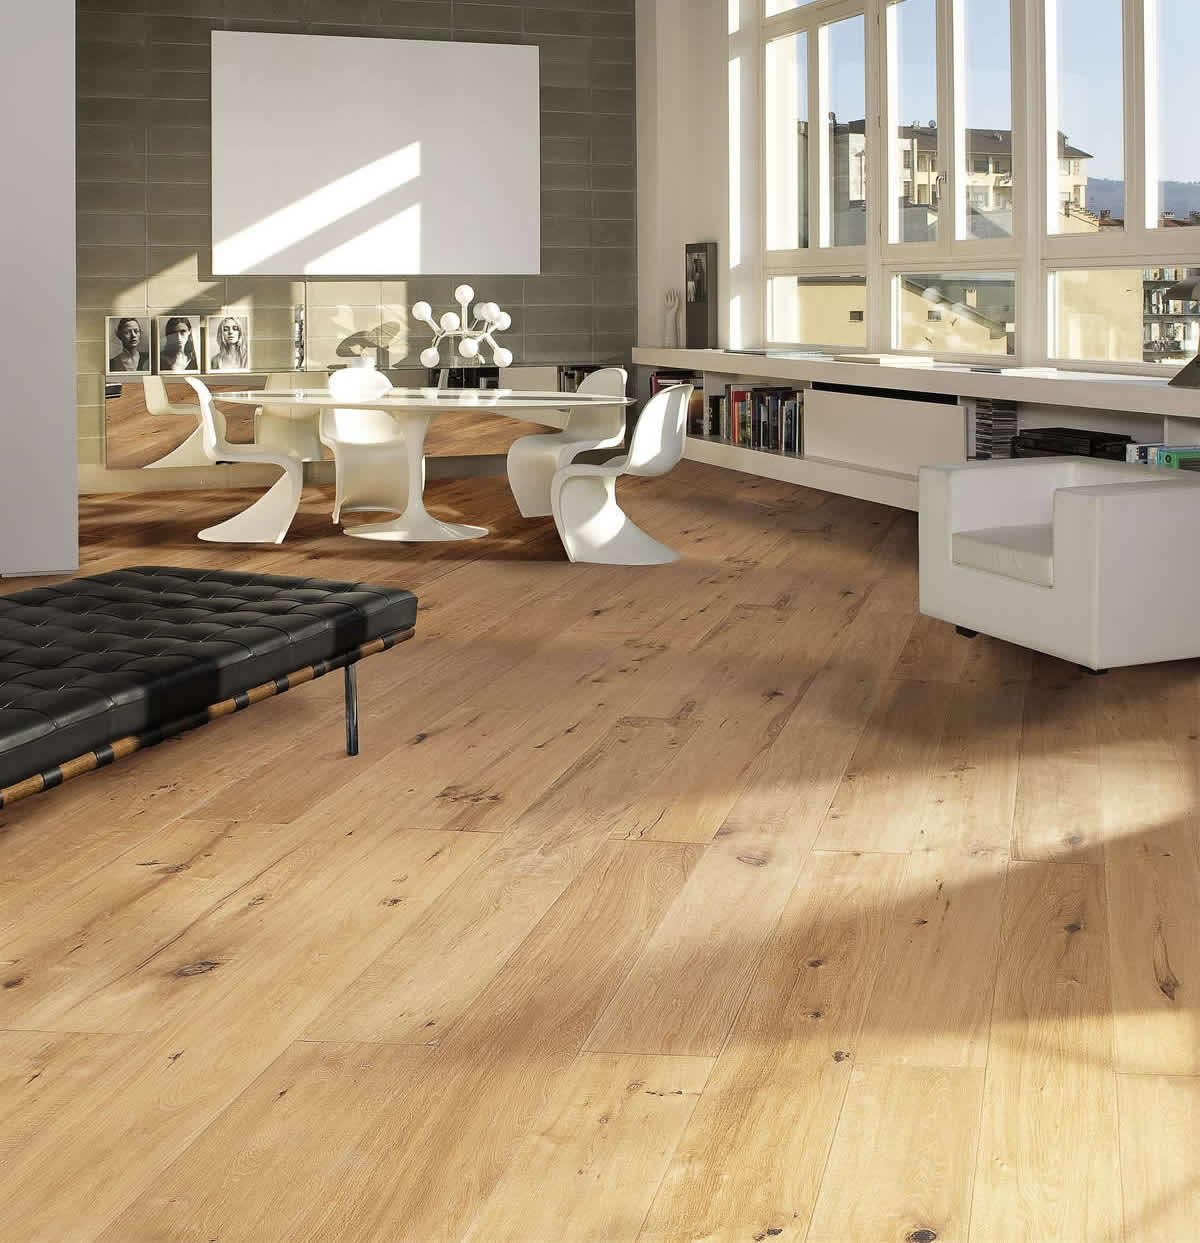 Kahrs oak casa engineered wood flooring for Kahrs flooring